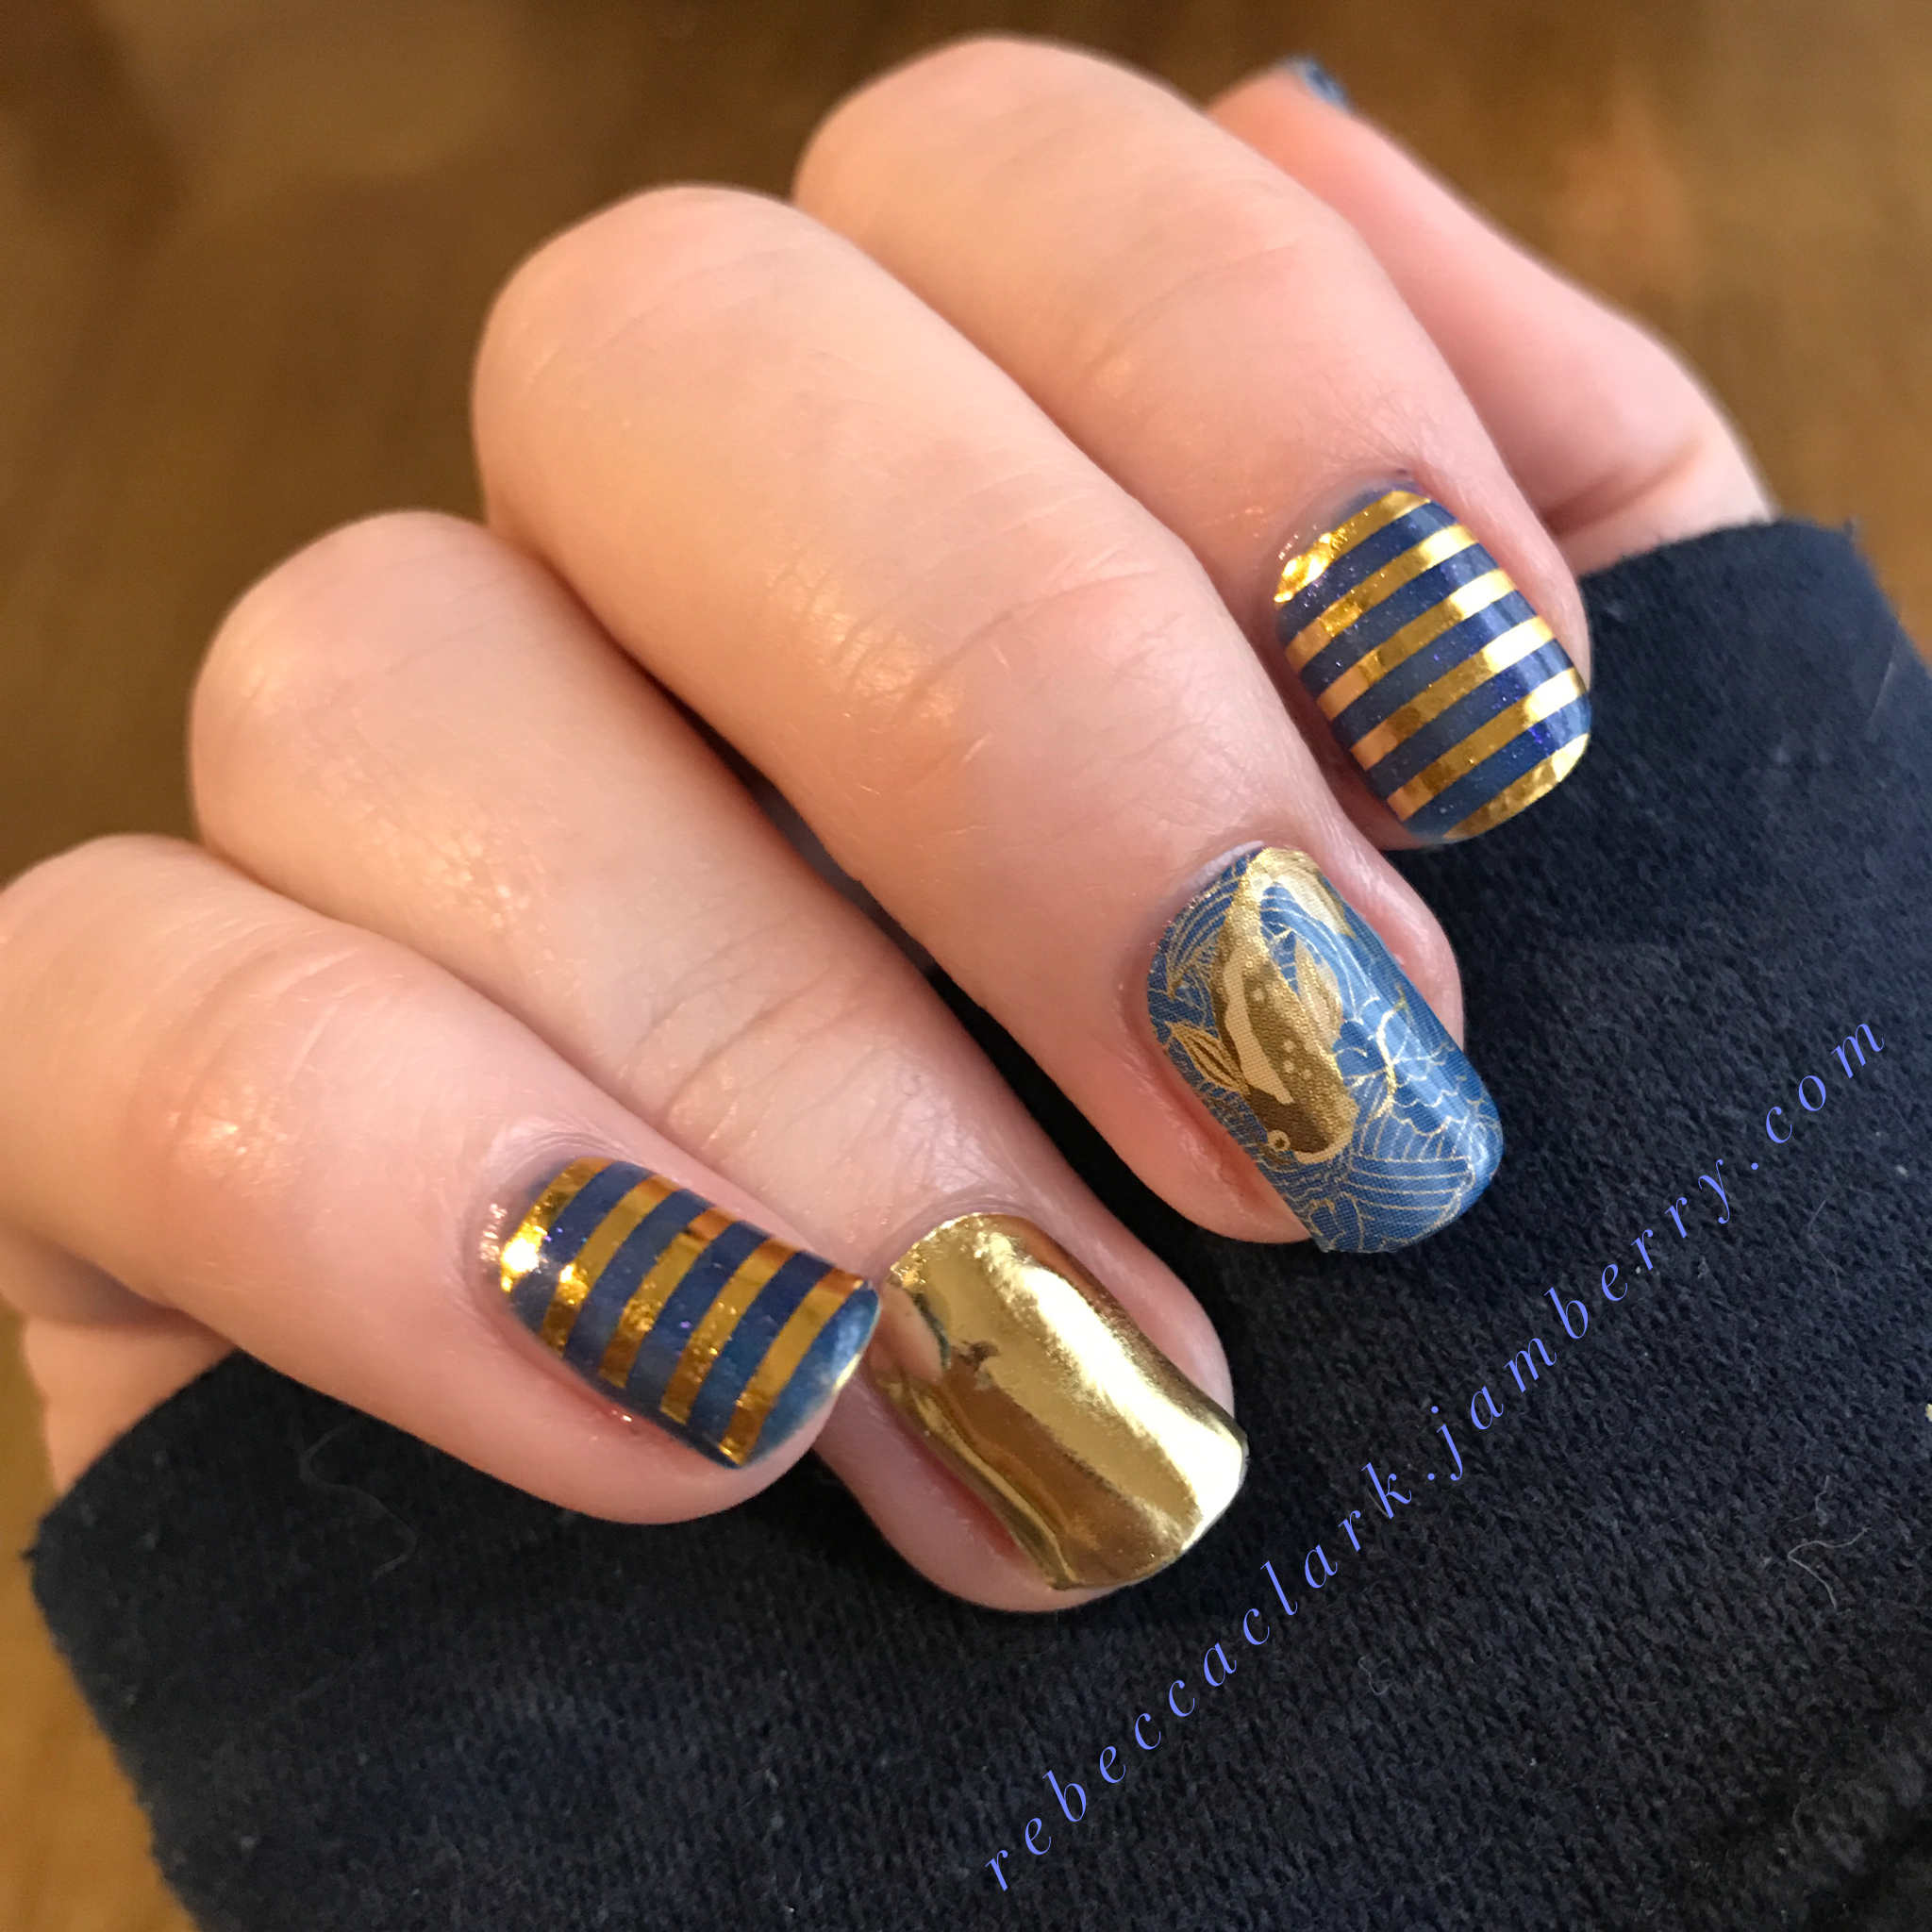 Metallic gold and blue mani with koi fish nail art | DIY Manicures ...